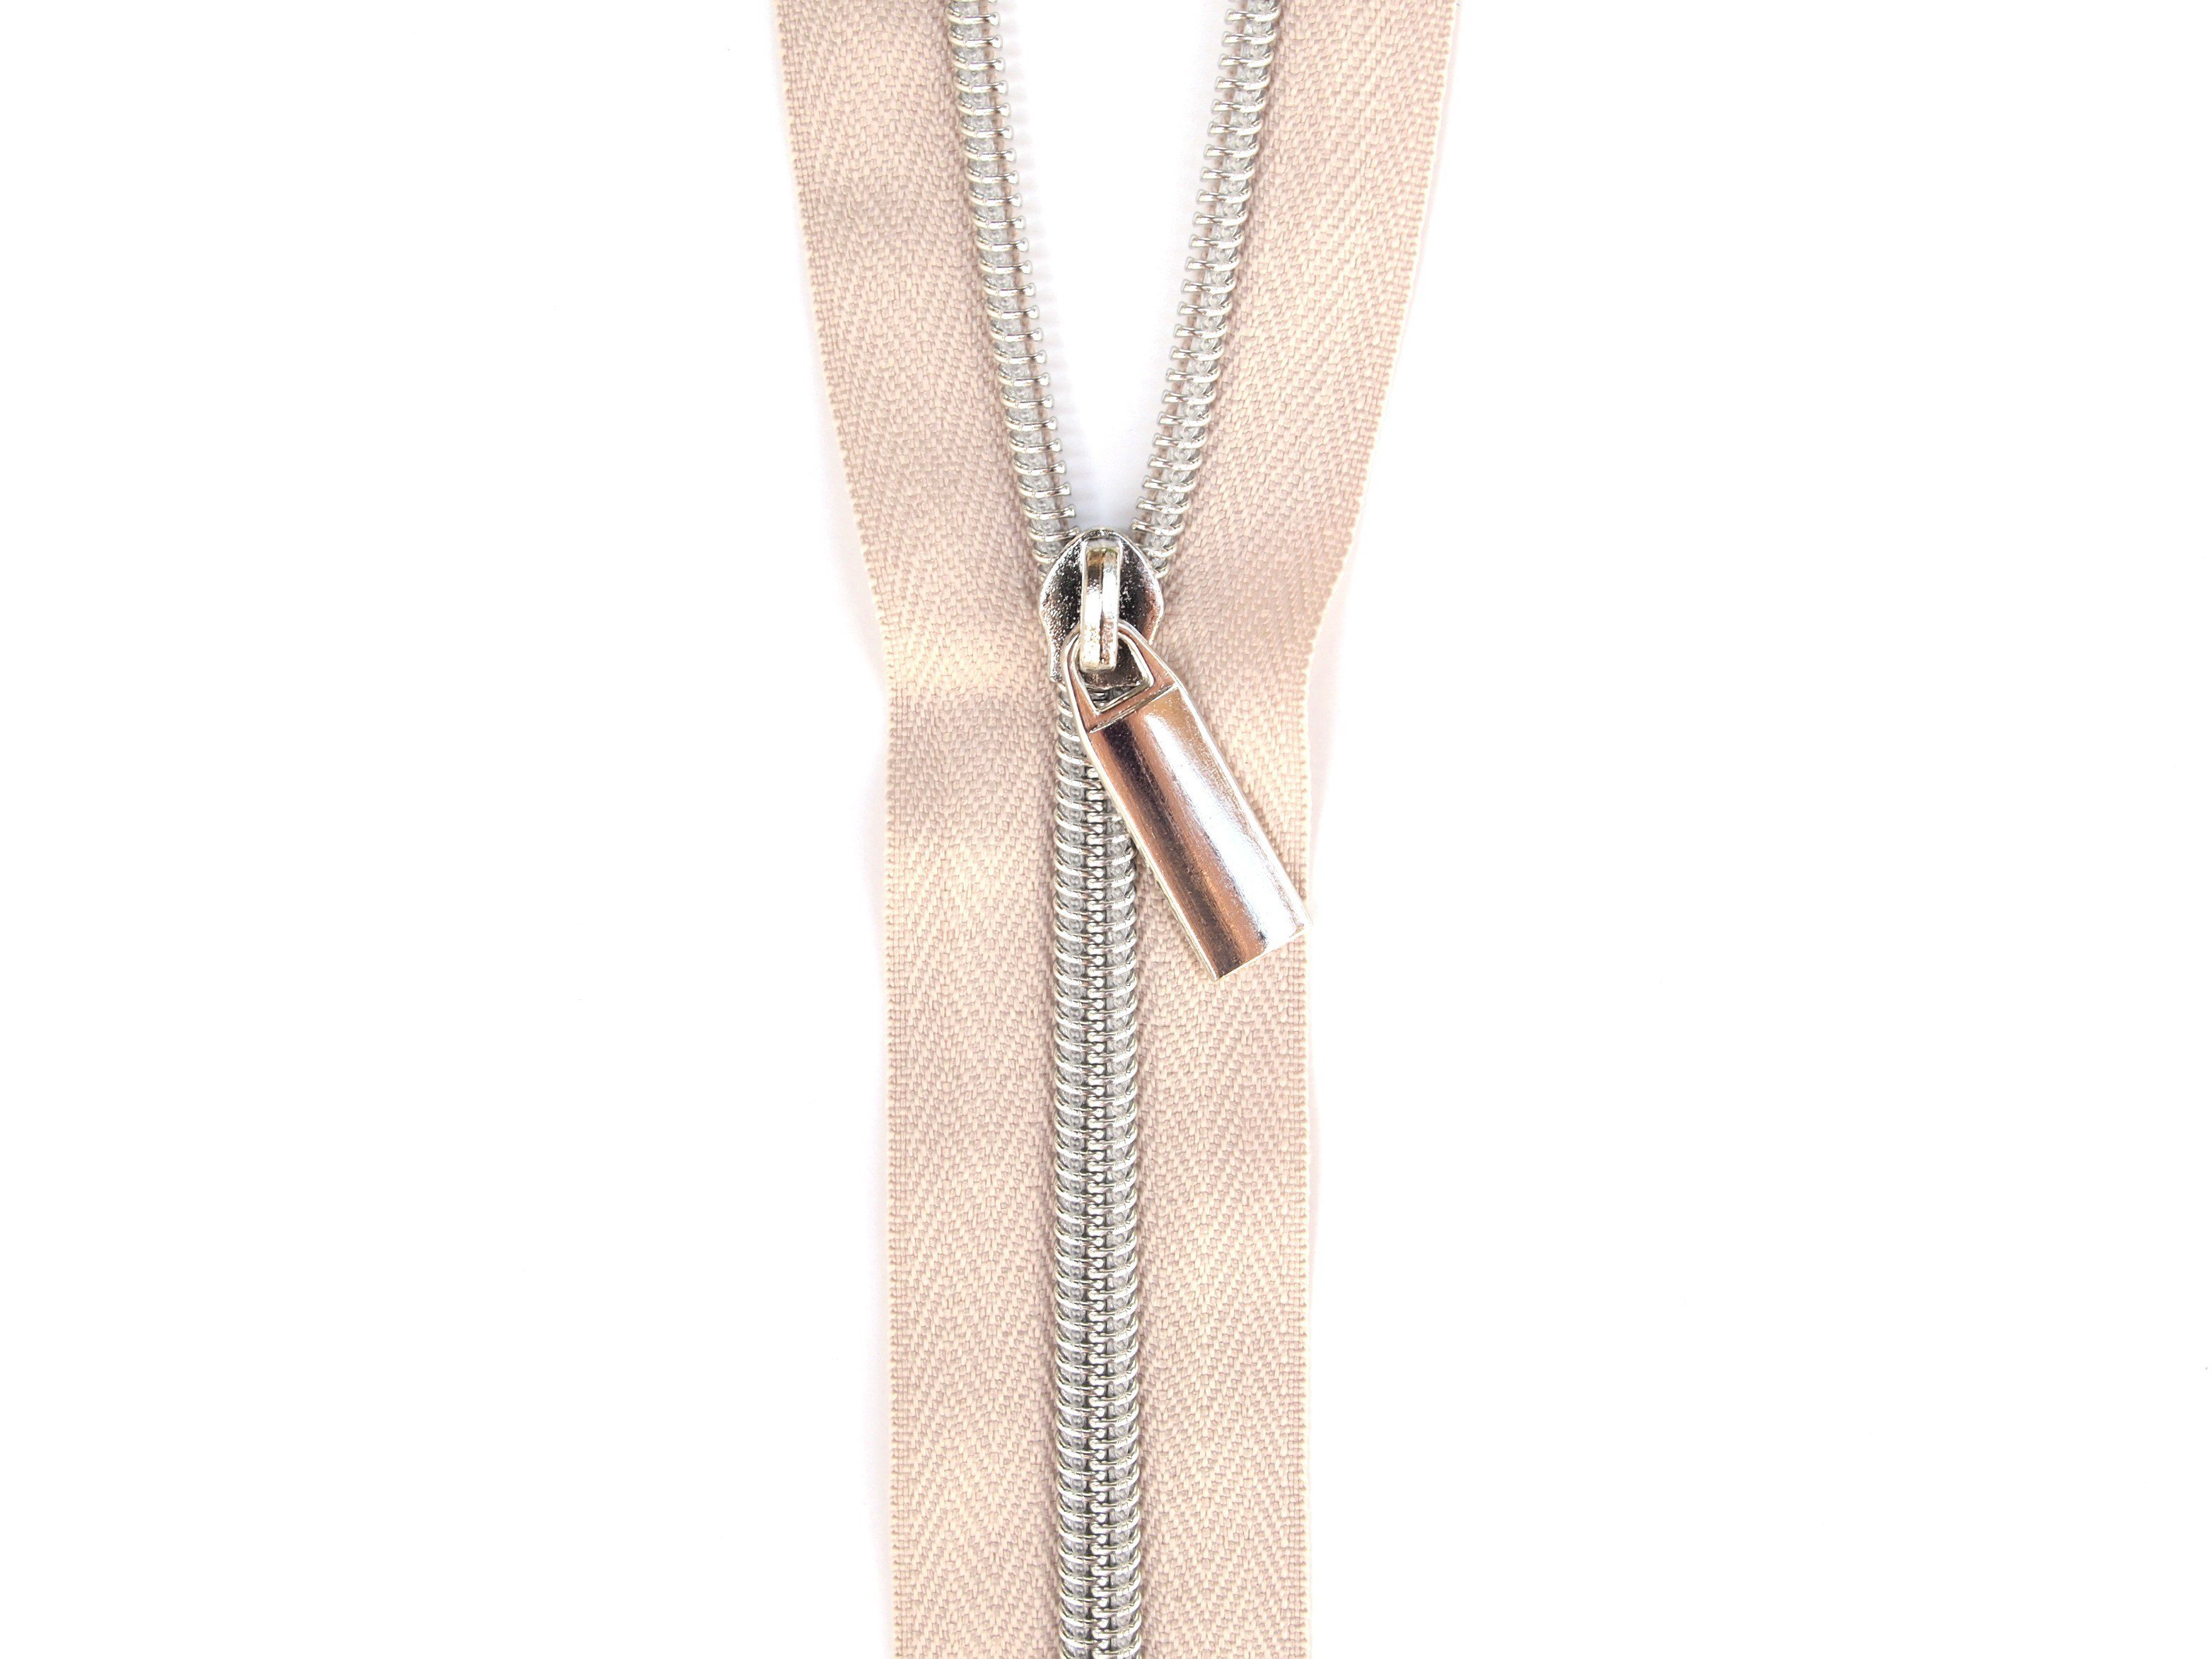 Sallie Tomato #5 Zippers by the Yard Beige With Silver Coils SaToZipBe+S